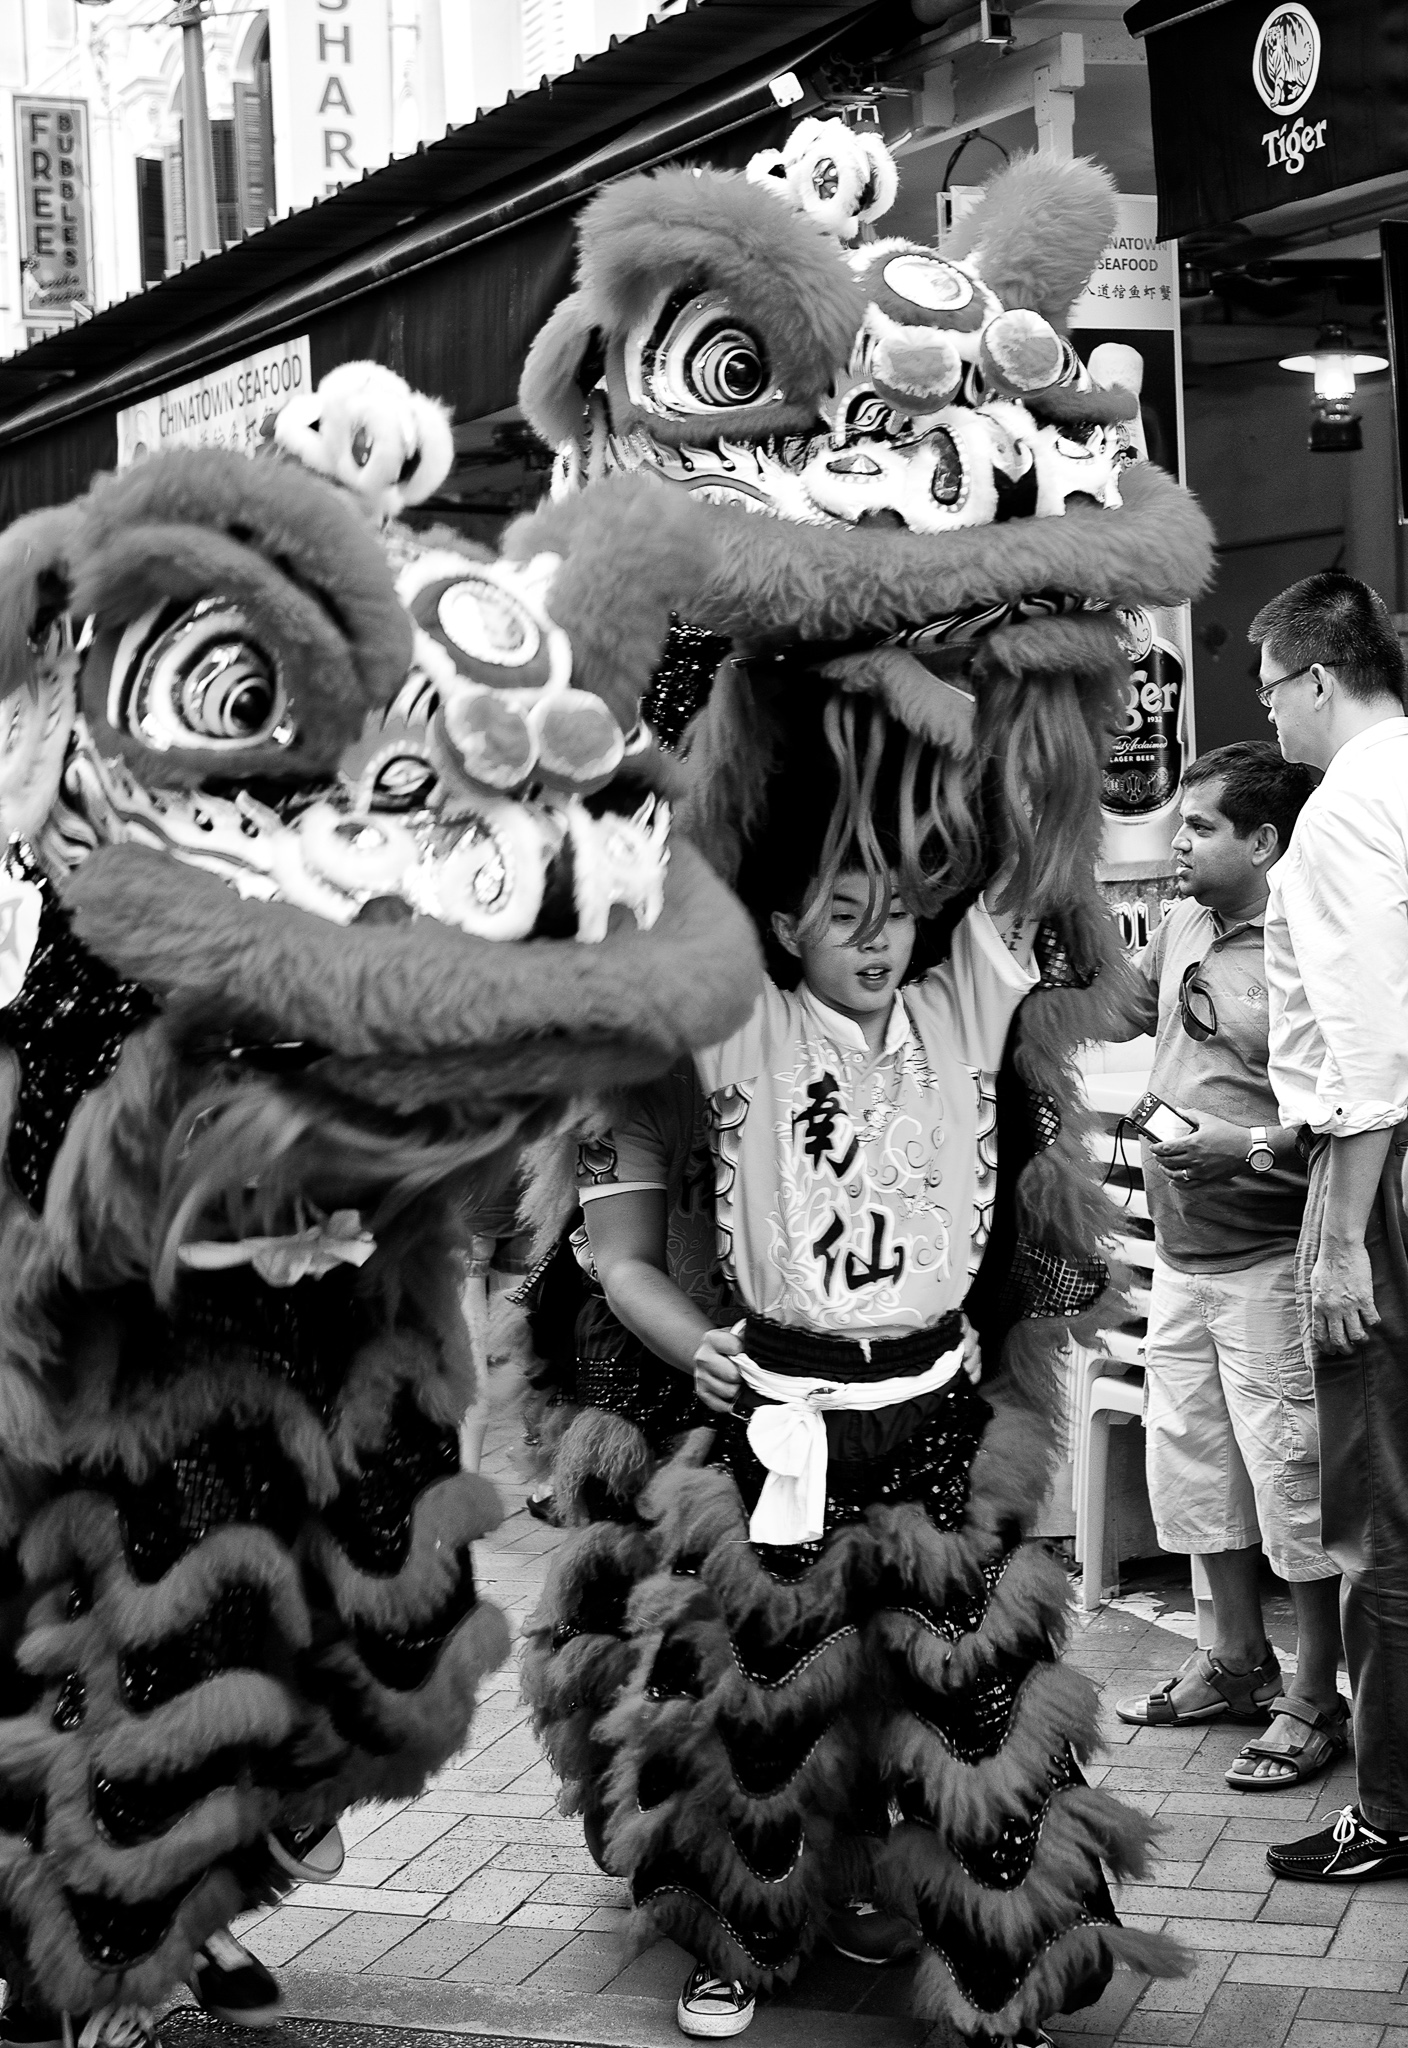 A lion dance troupe on the move, China Town, Singapore